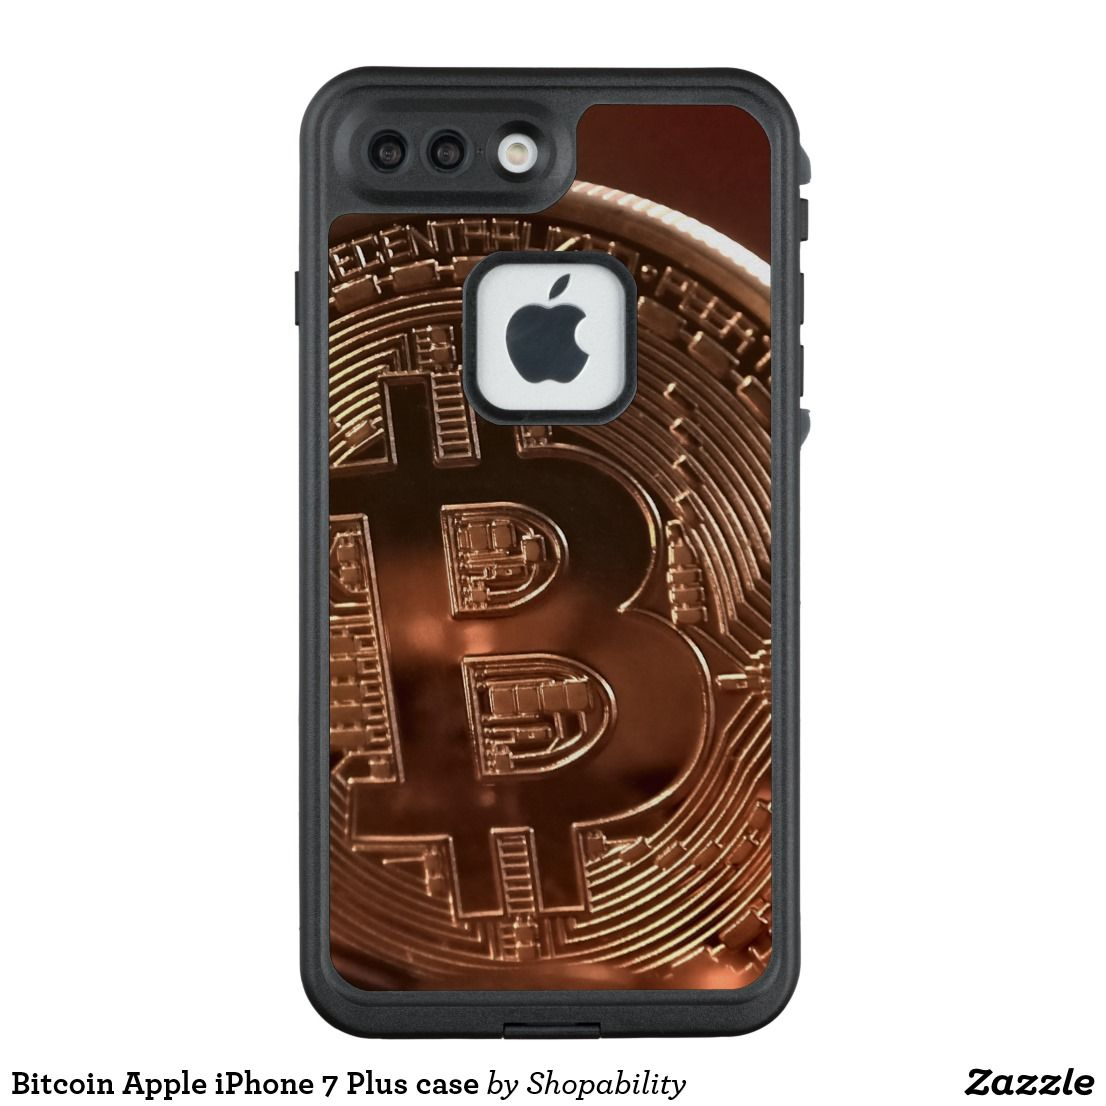 Bitcoin apple iphone 7 plus case iphone cases pinterest bitcoinbitcoin 2017bitcoin addressbitcoin analysisbitcoin and coffee bitcoin ccuart Image collections